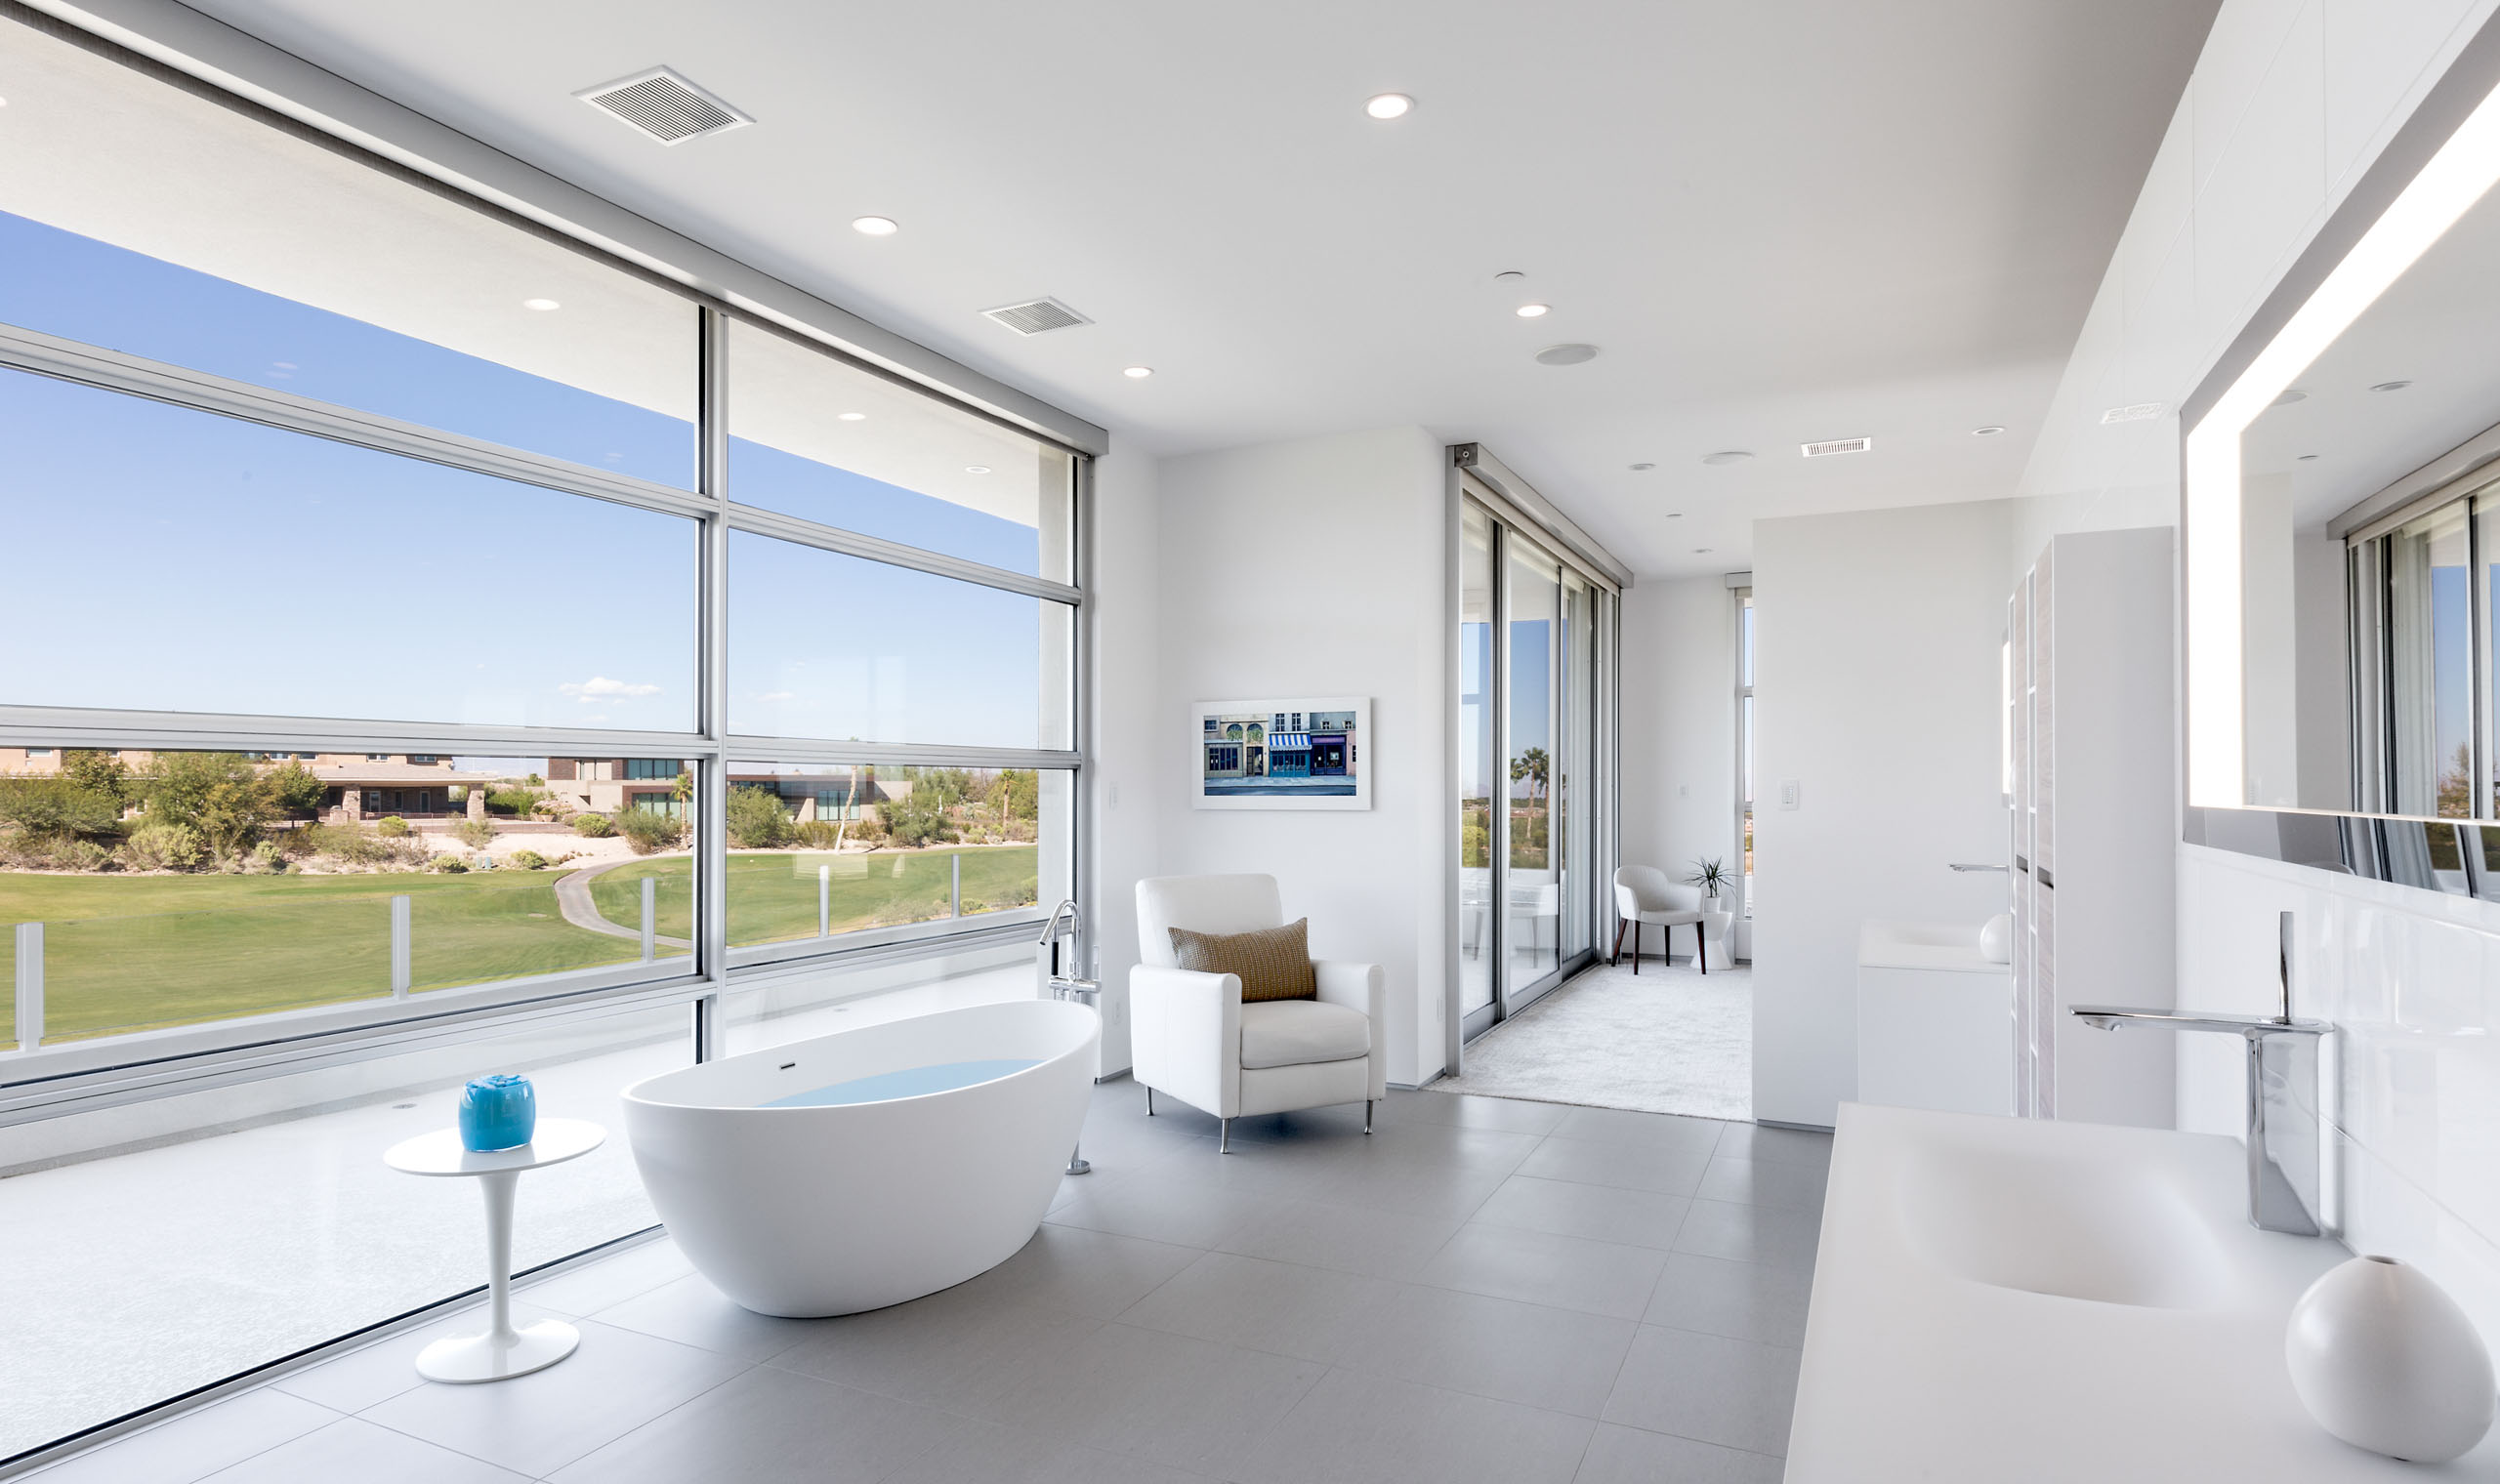 A wall of windows bathes the bathroom in California sunshine.